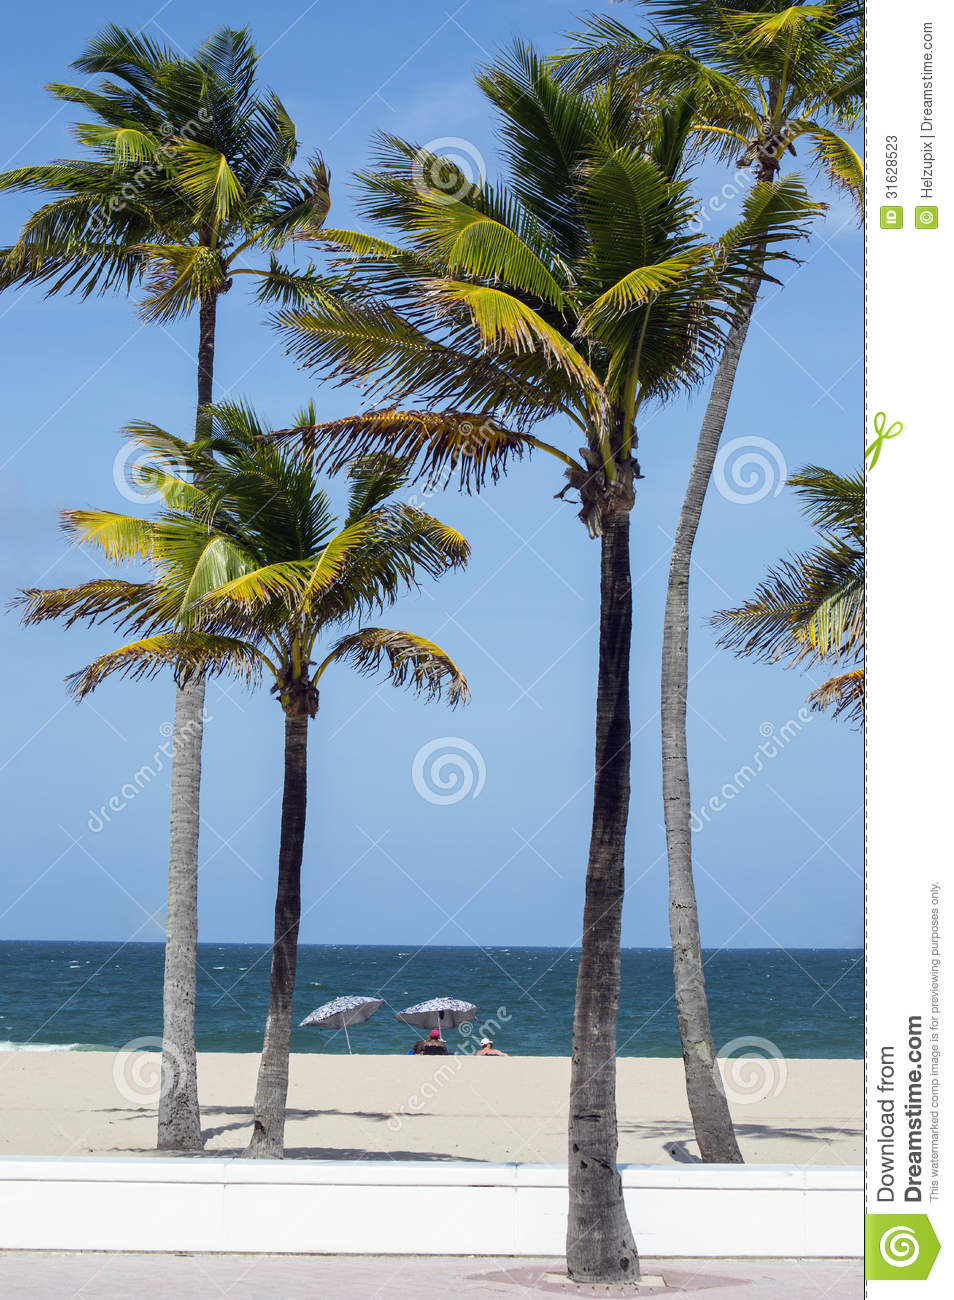 Palm Trees And Sunbathers On The Beach Stock Image